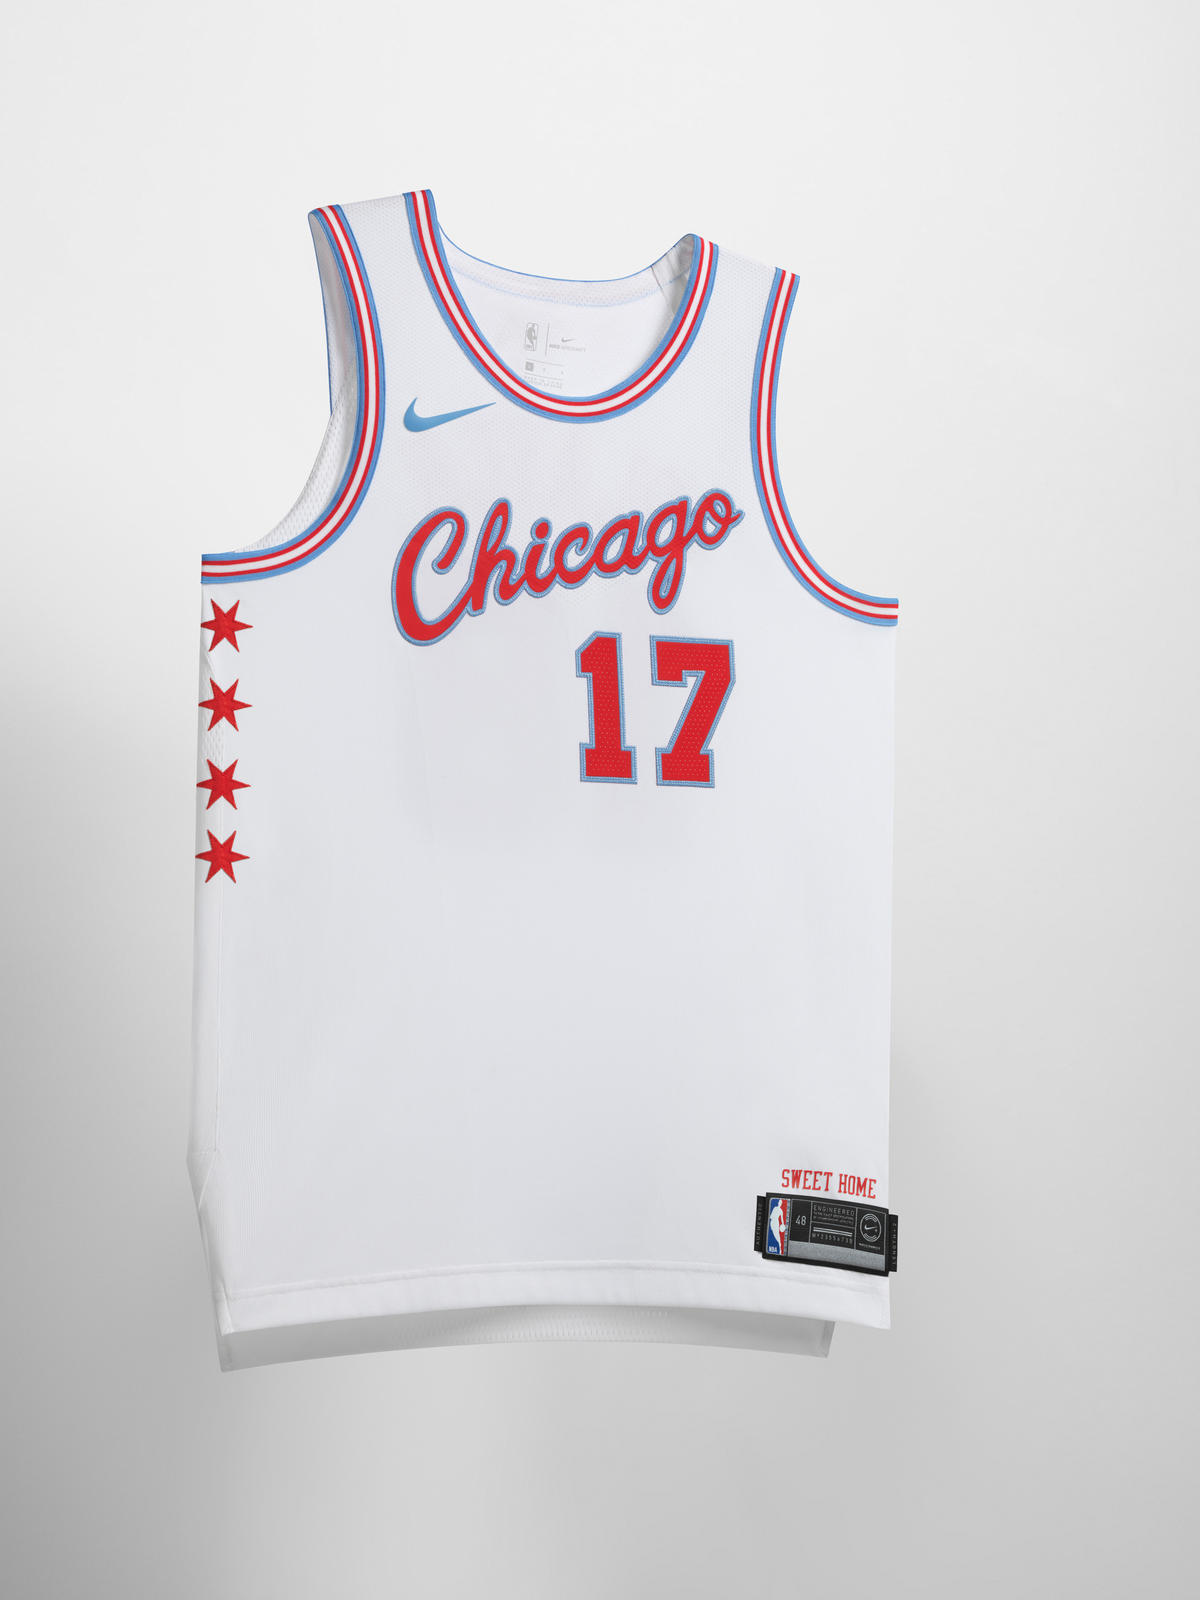 Chicago Bulls City Edition jersey